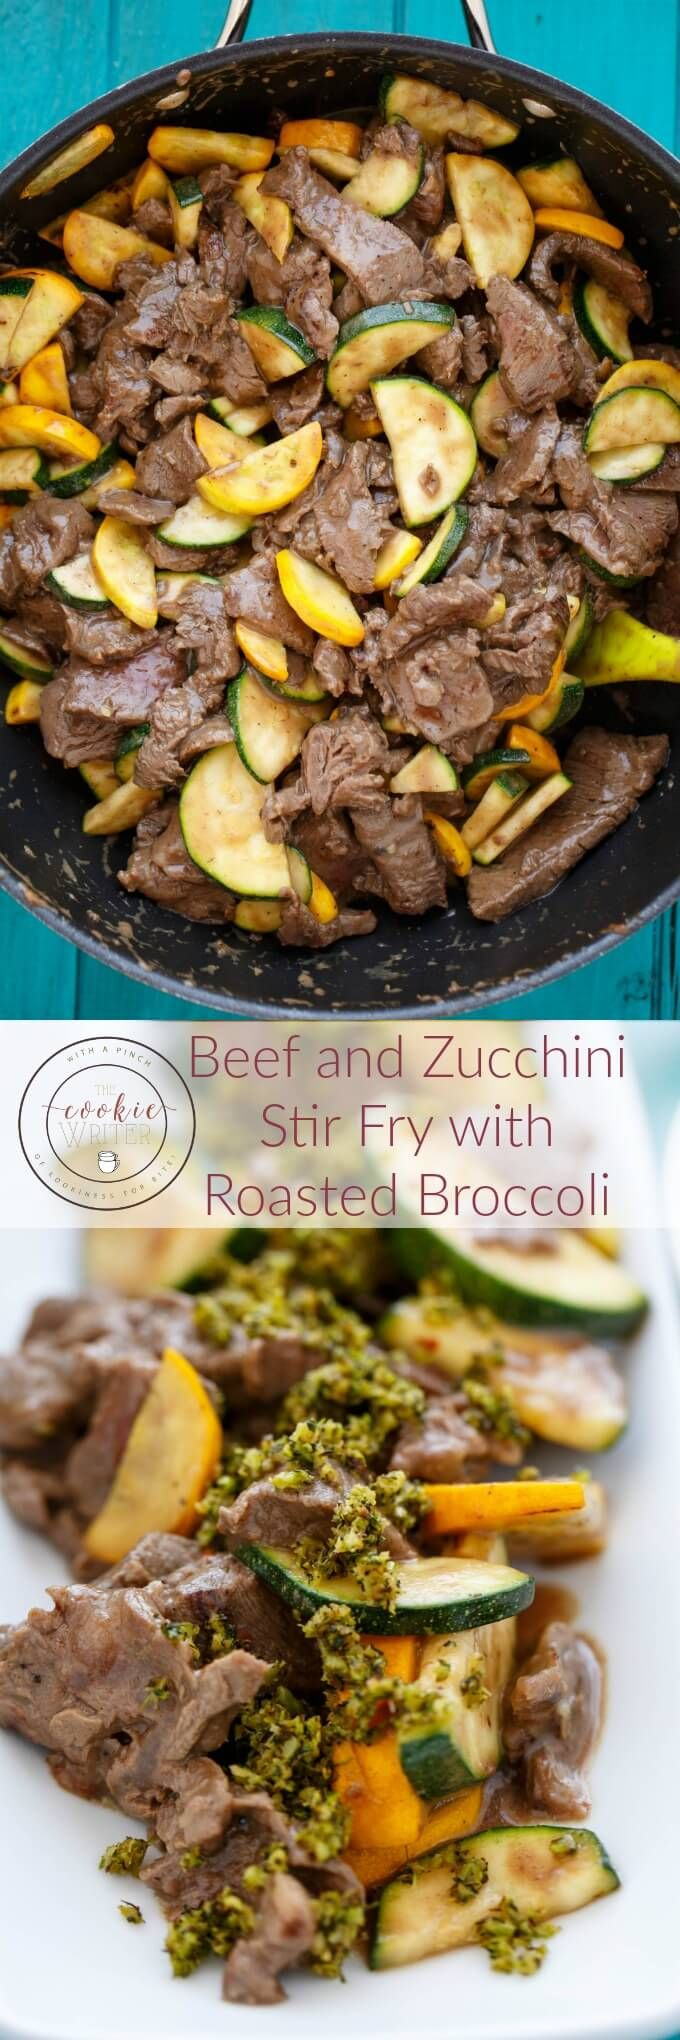 Beef and Zucchini Stir Fry with Roasted Broccoli   http://thecookiewriter.com   @thecookiewriter   #stirfry   This beef and zucchini stir fry is the perfect way to use up garden veggies and the roasted broccoli garnish is totally optional!